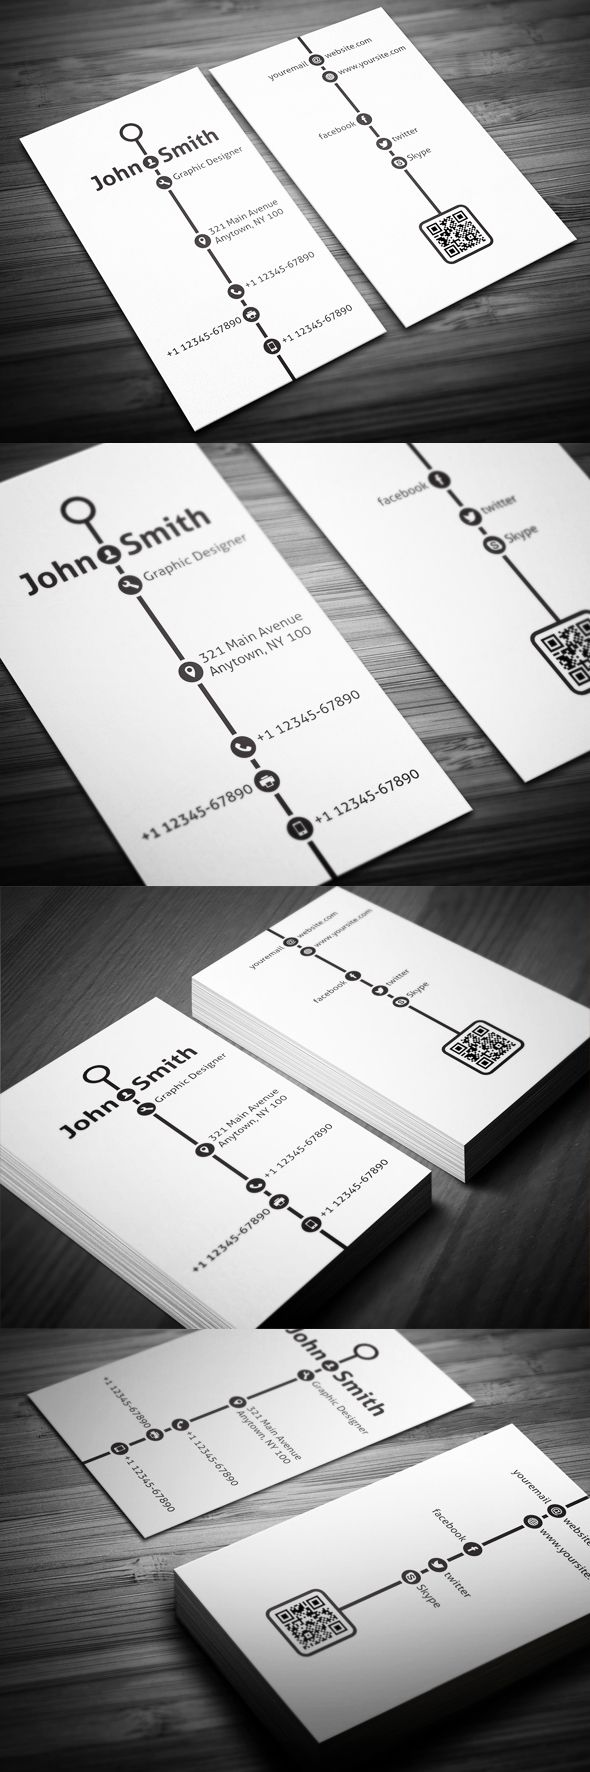 827 Best Cards Logos Designs Images On Pinterest Maternity